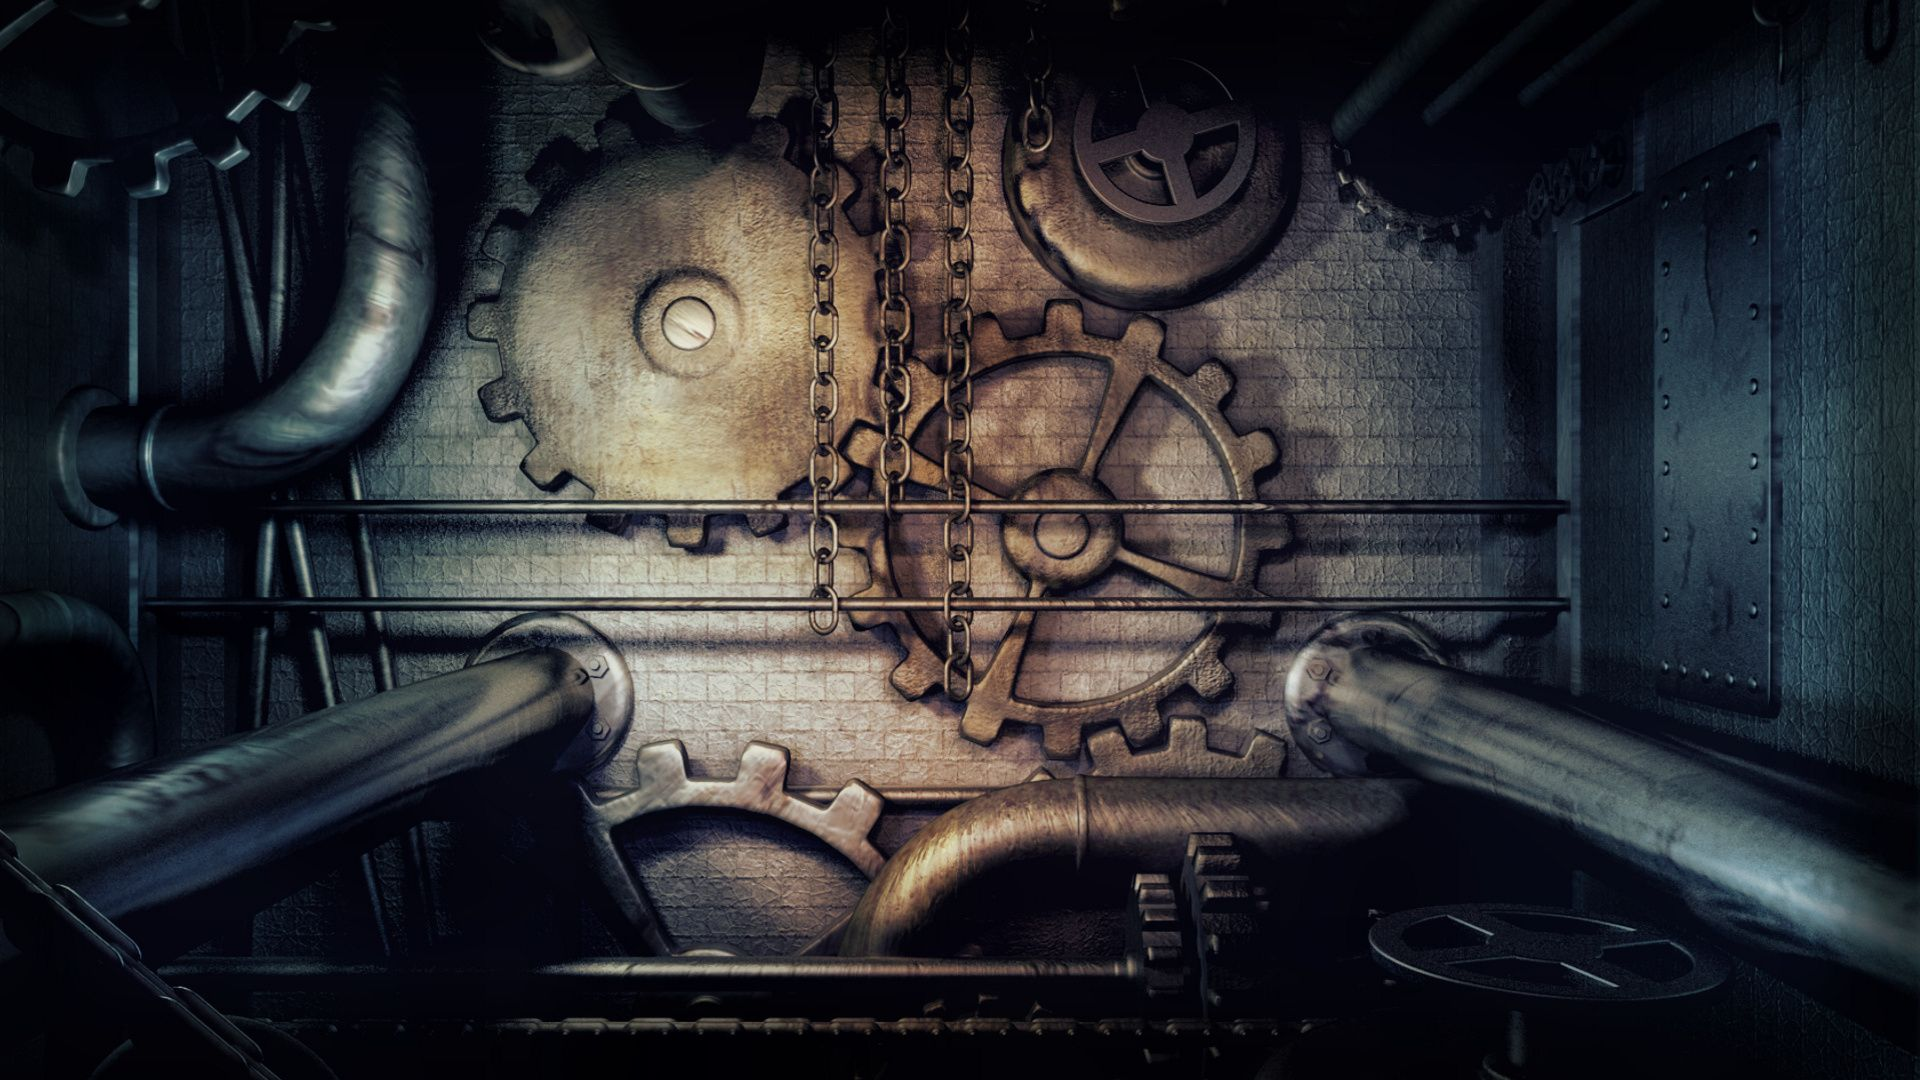 steampunk panel gears and pipes brass wallpaper